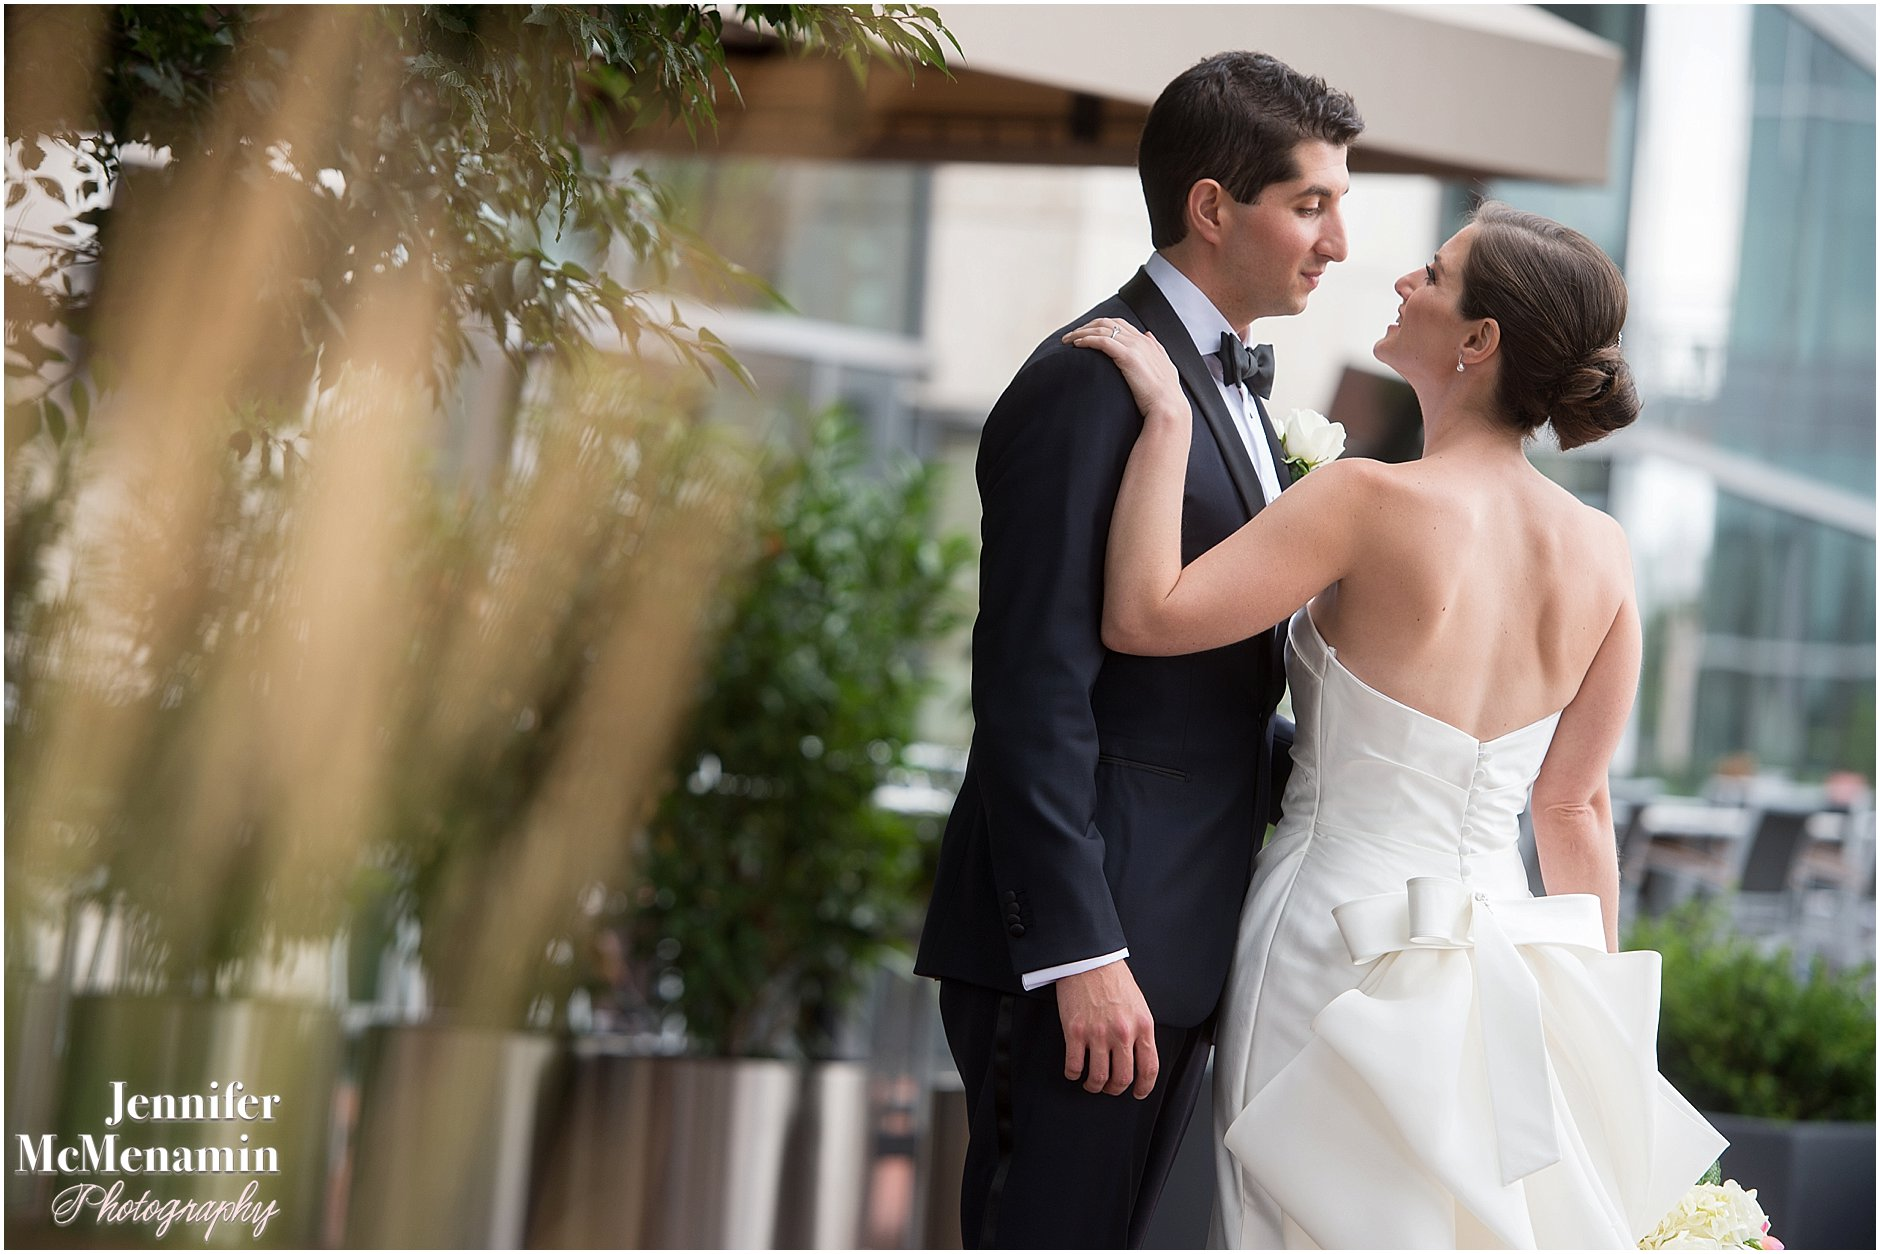 001-Jennifer-McMenamin-Photography-Baltimore-Waterfront-Marriott-wedding_0034